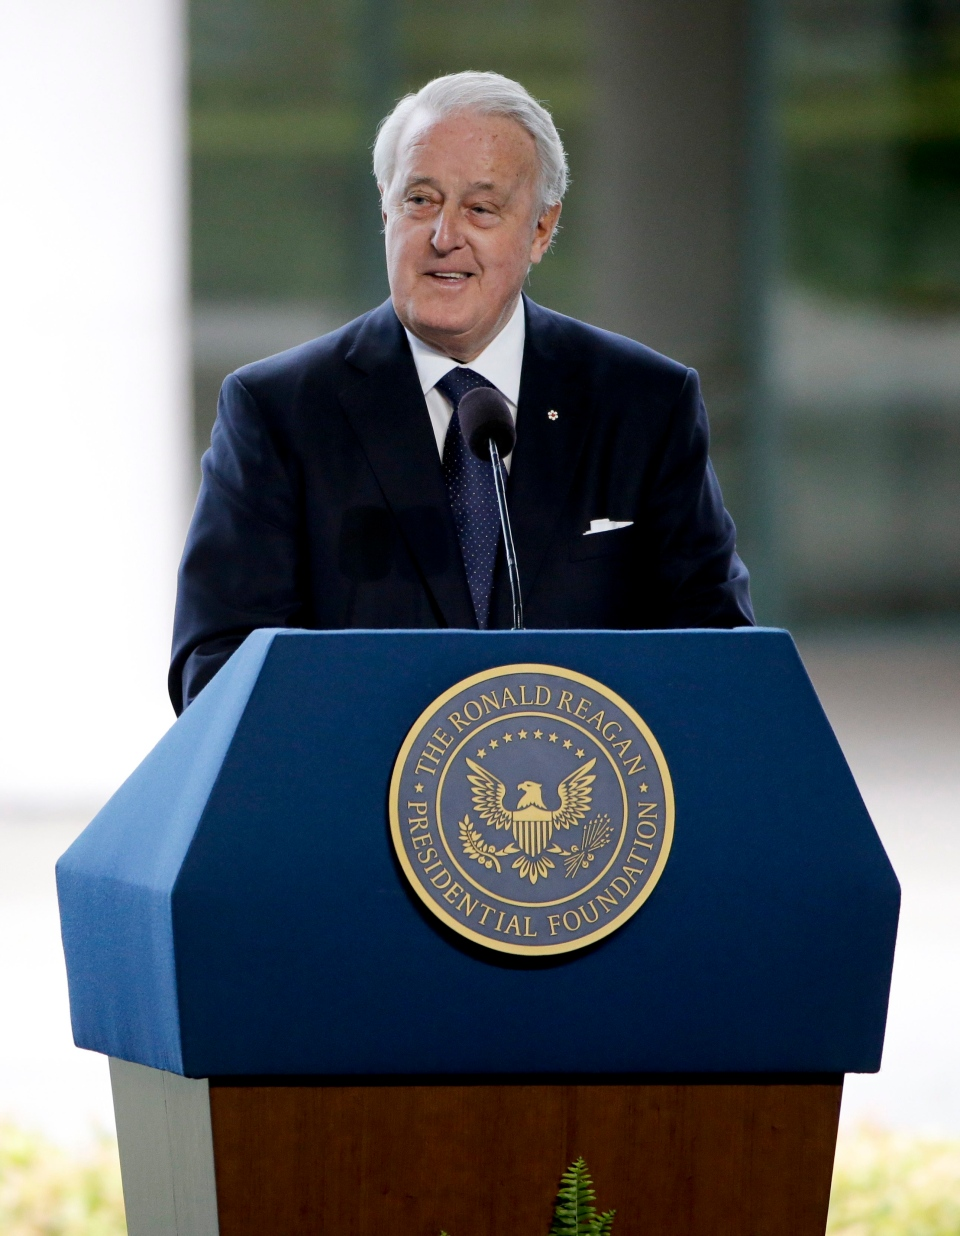 Former Canadian Prime Minister Brian Mulroney speaks during the funeral service for Nancy Reagan at the Ronald Reagan Presidential Library, Friday, March 11, 2016 in Simi Valley, Calif. (AP / Jae C. Hong)